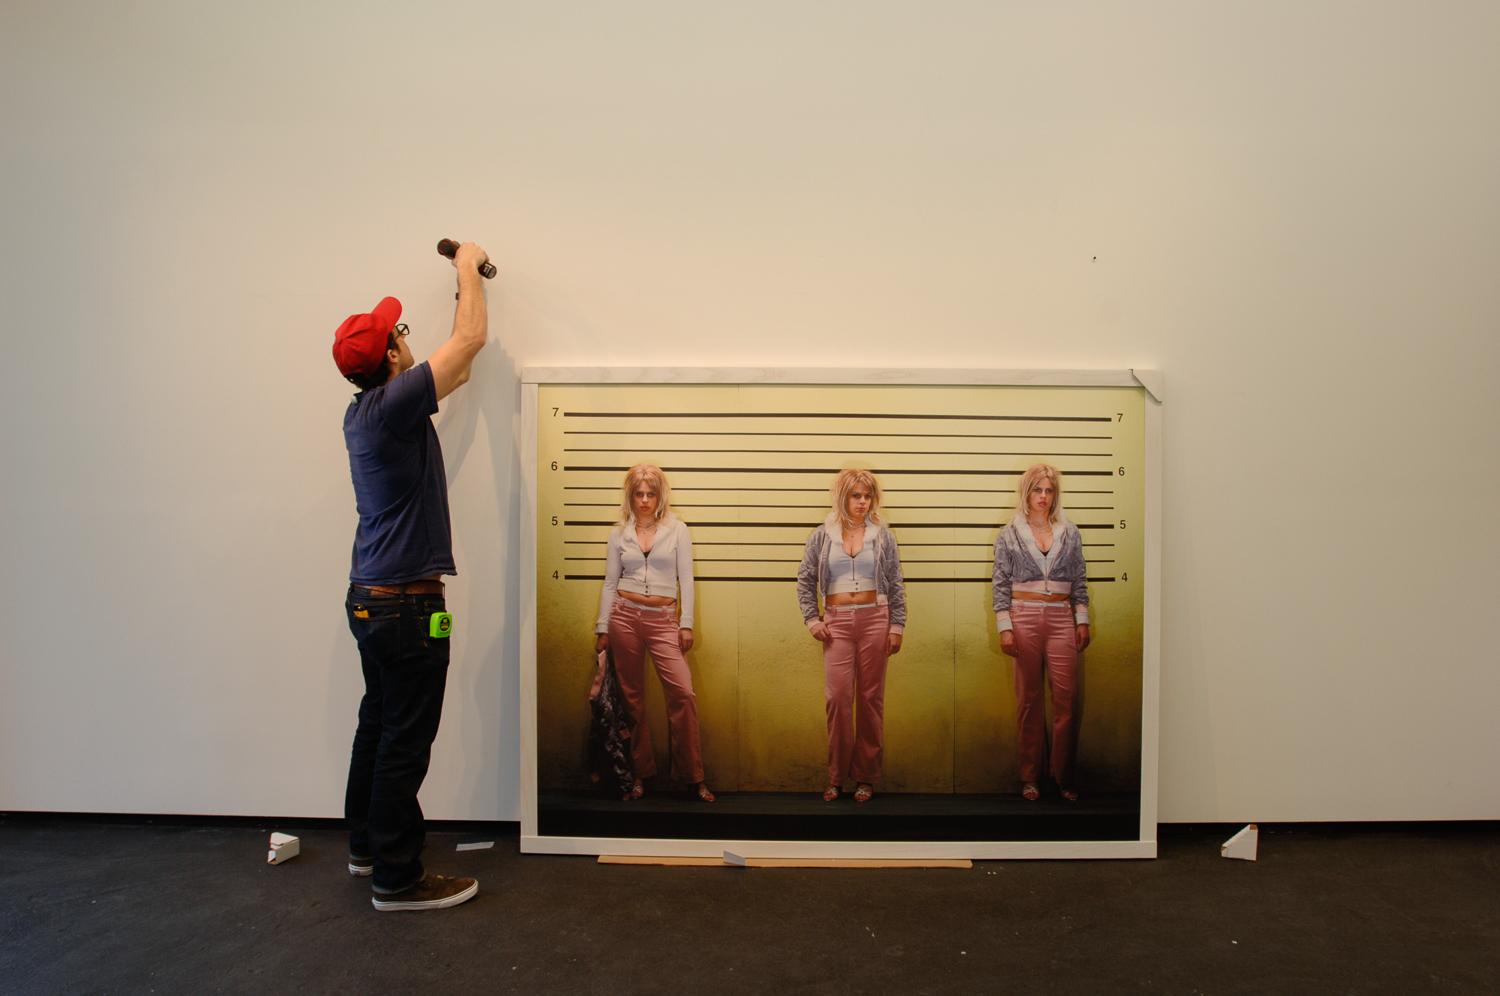 TRIIIBE installing show at Dodge Gallery, New York. January 5, 2011.